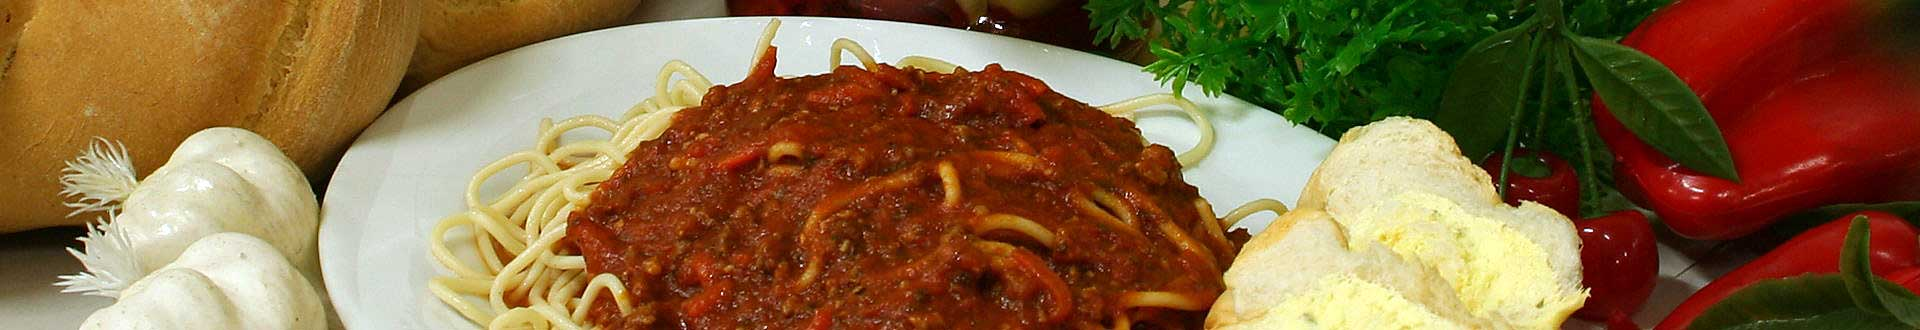 heat-and-serve-spaghetti1